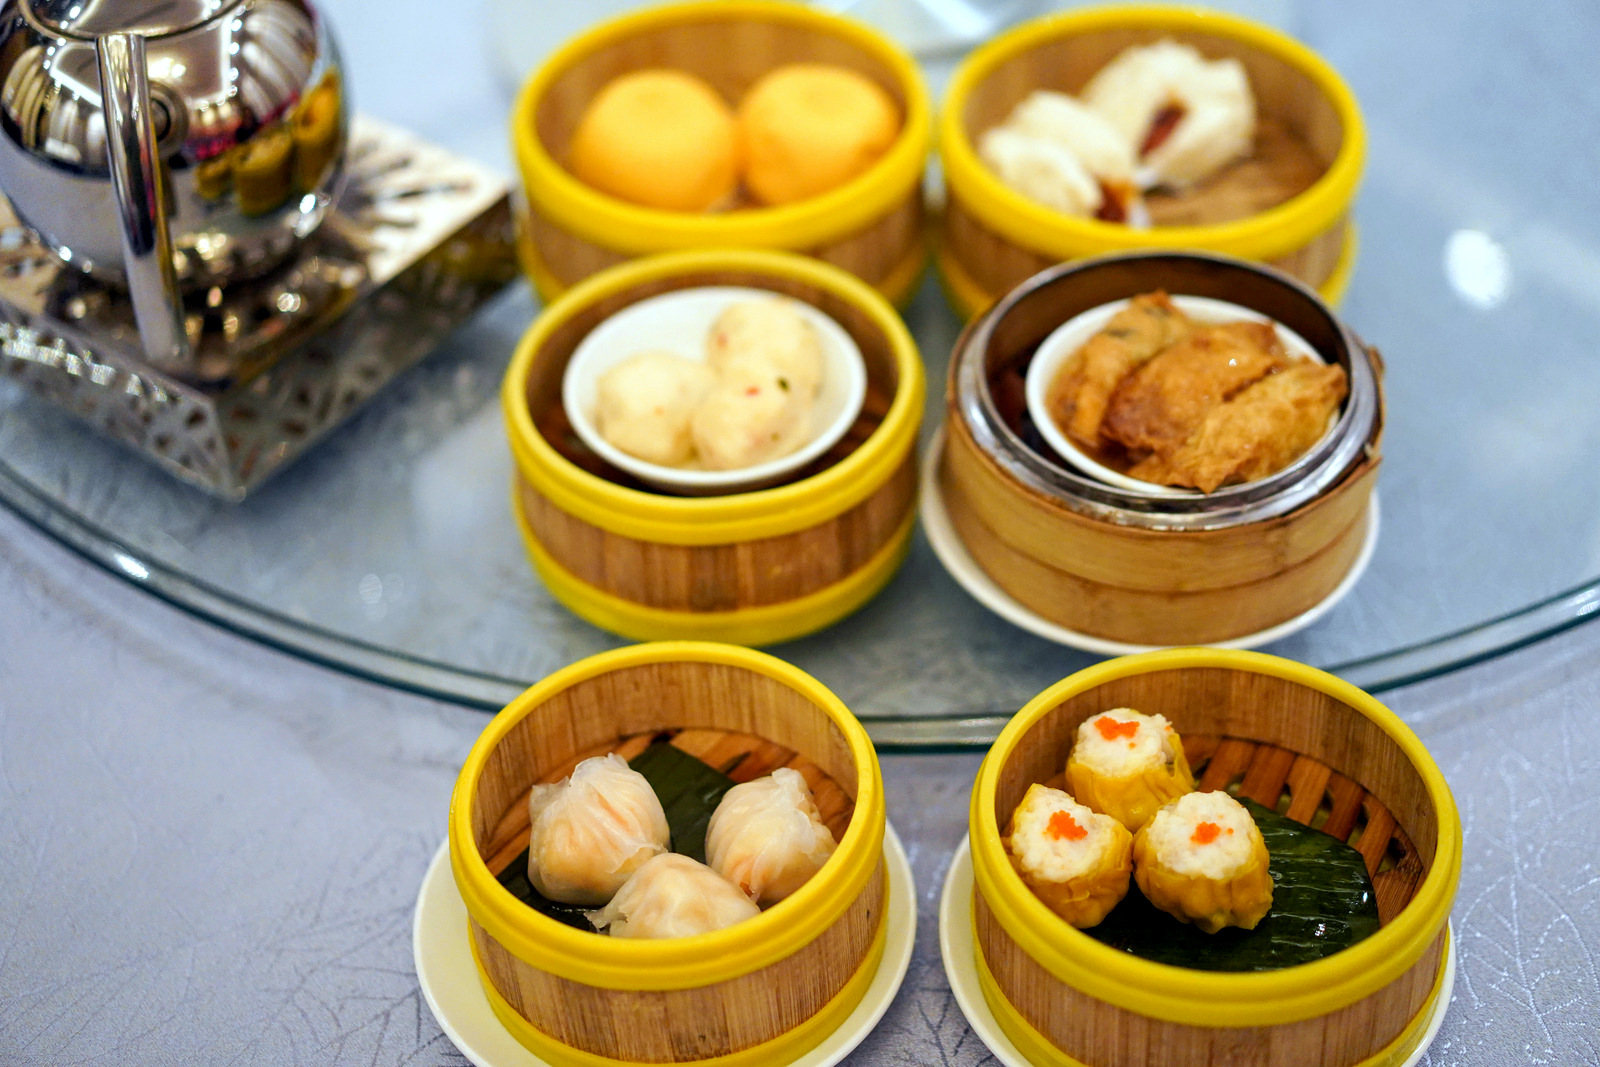 zuan yuan, one world hotel: all-you-can-eat dim sum